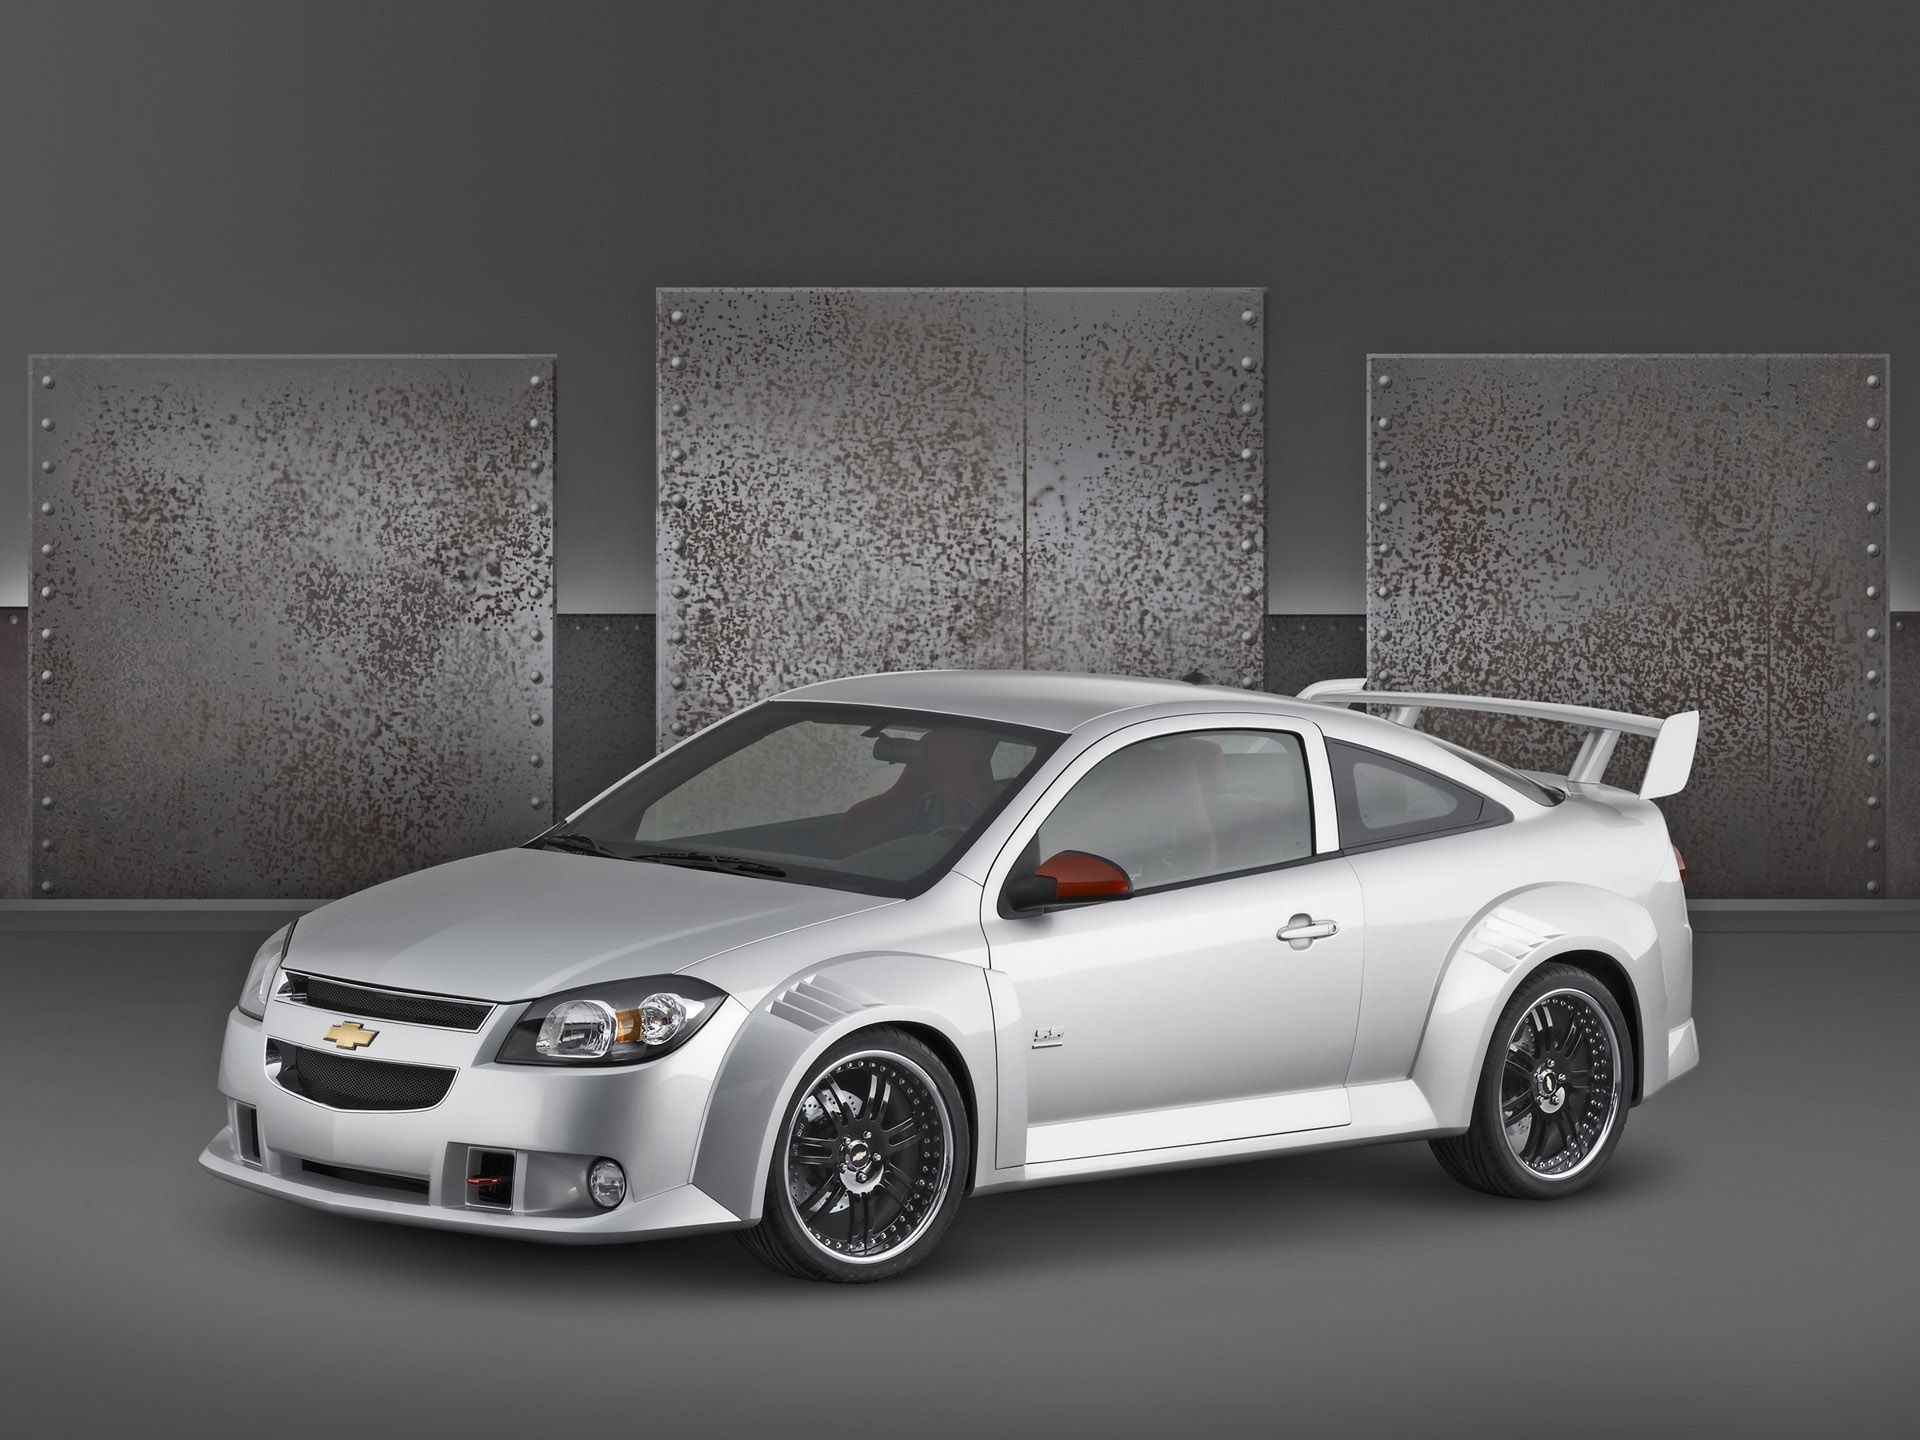 chevrolet cobalt ss pure beauty cars beauty chevrolet cobalt ss pure beauty